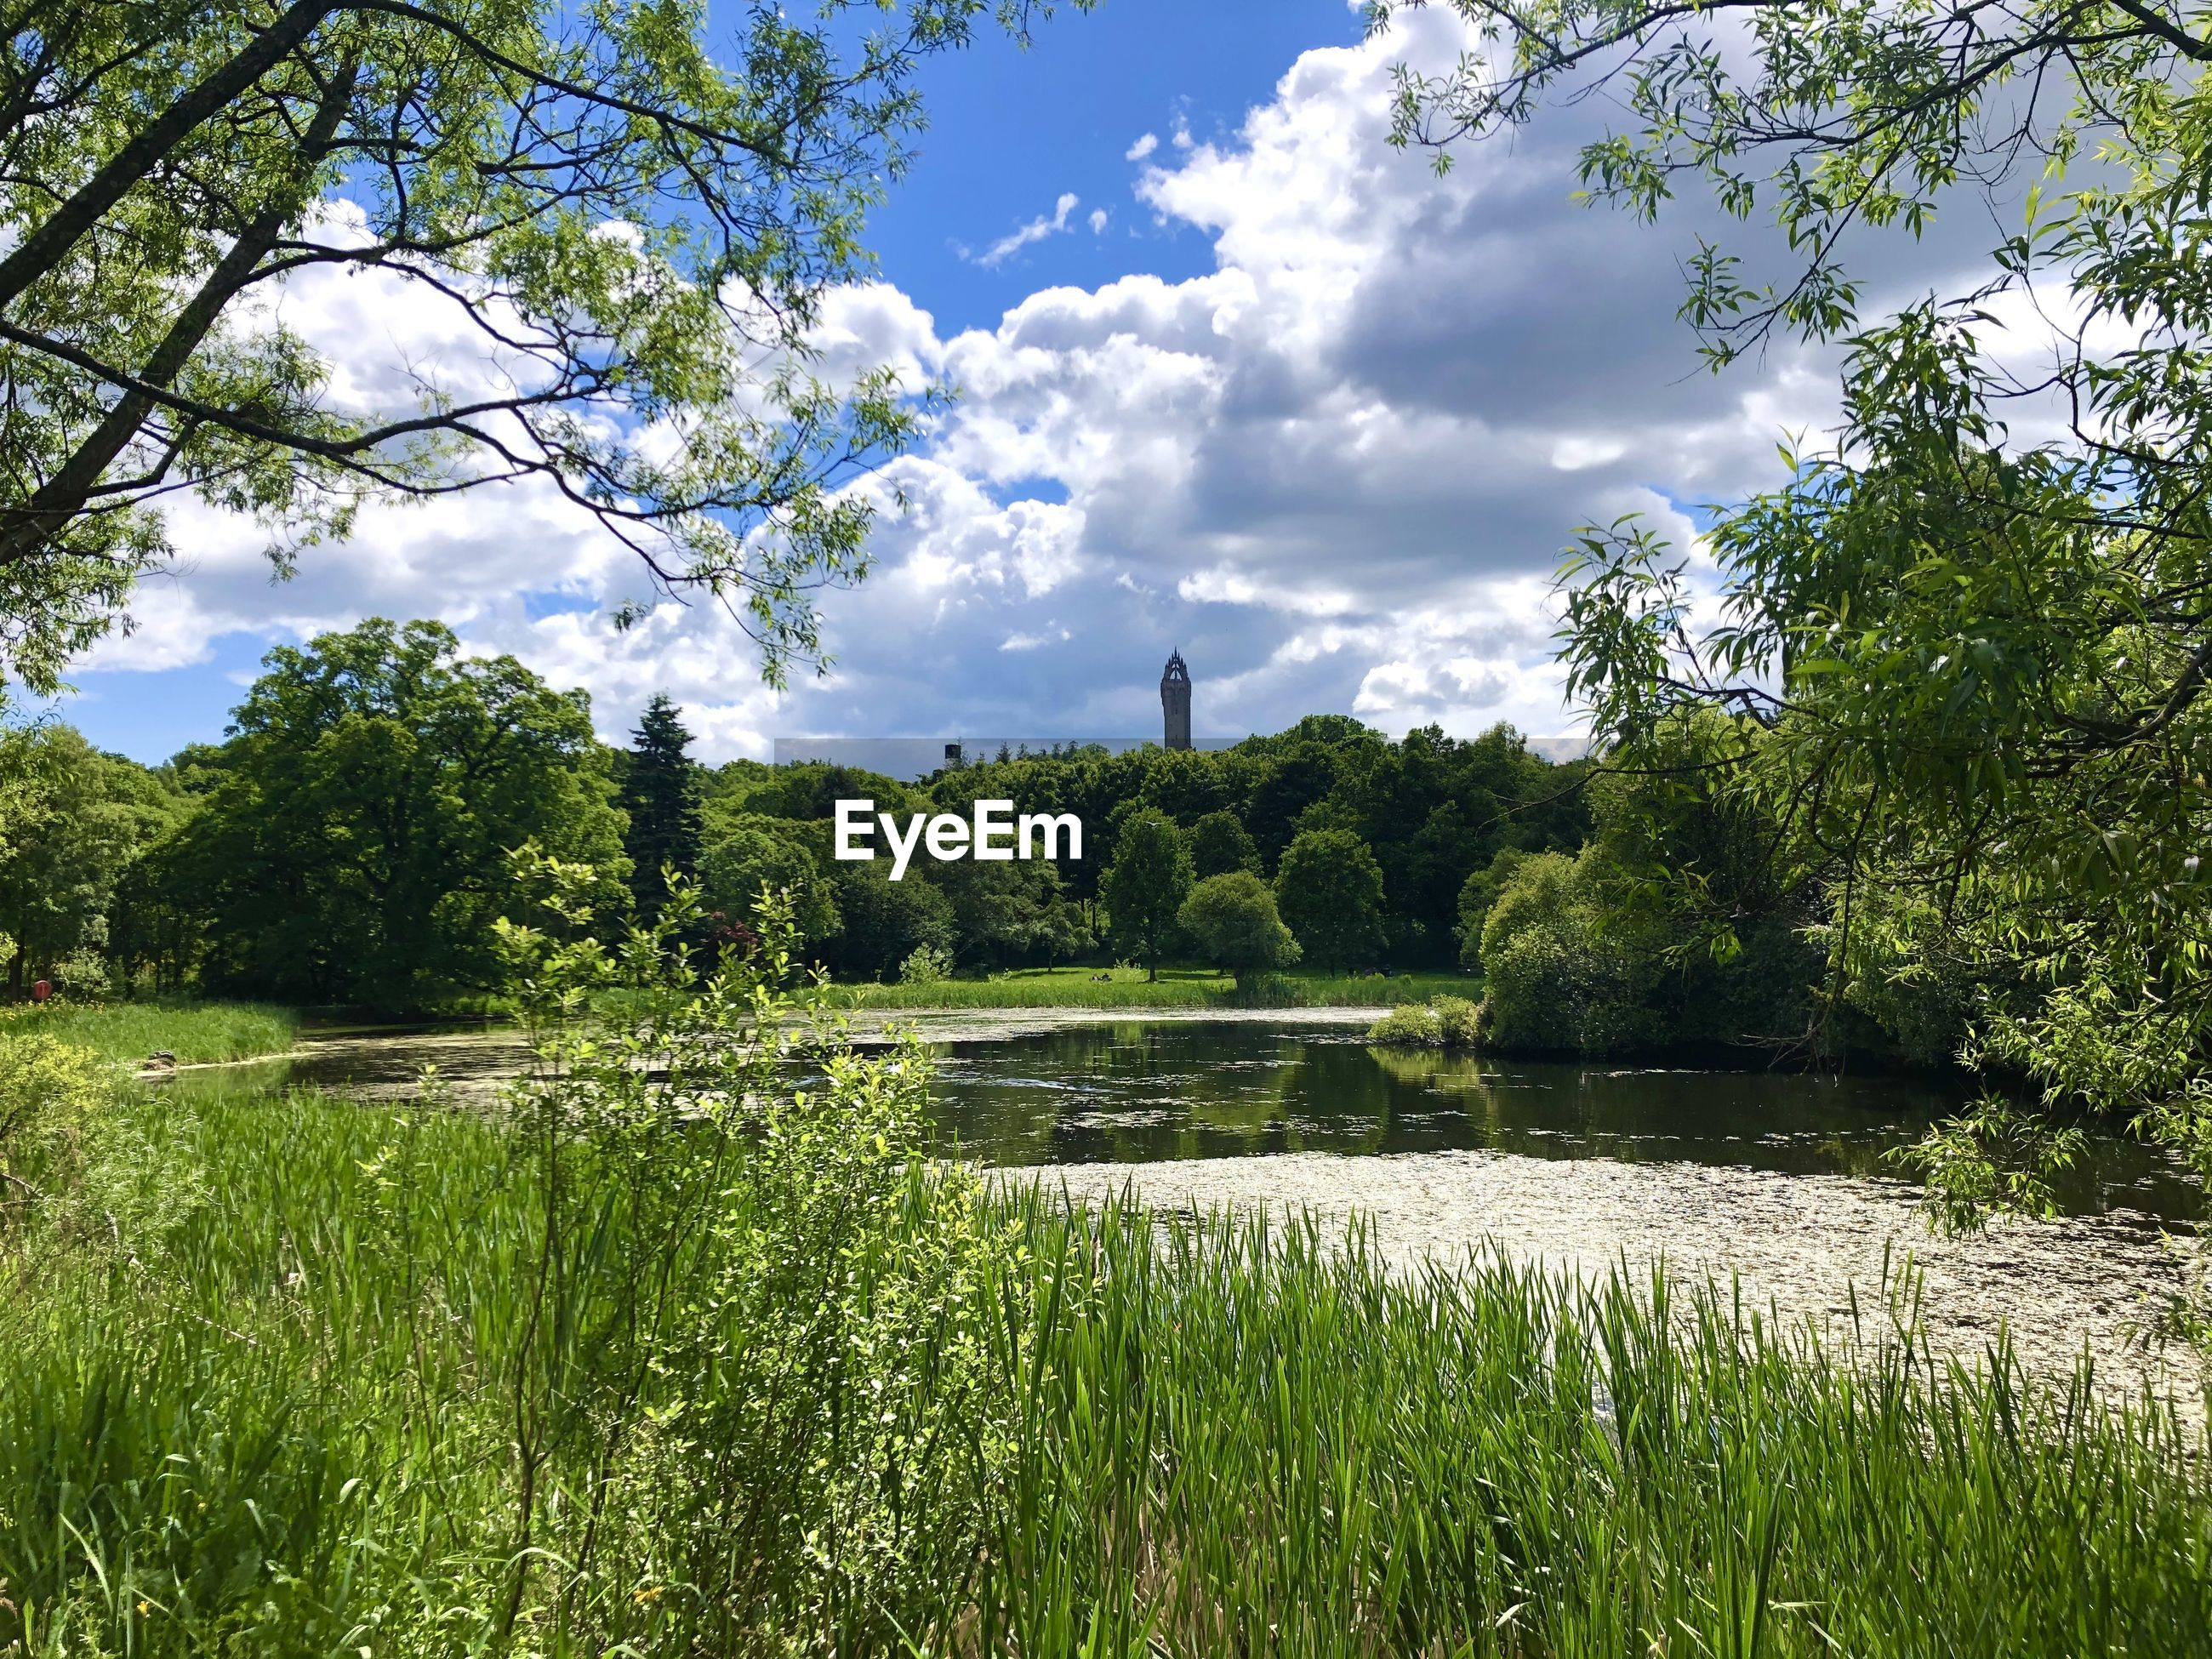 Scenic view of lake against sky with wallace monument